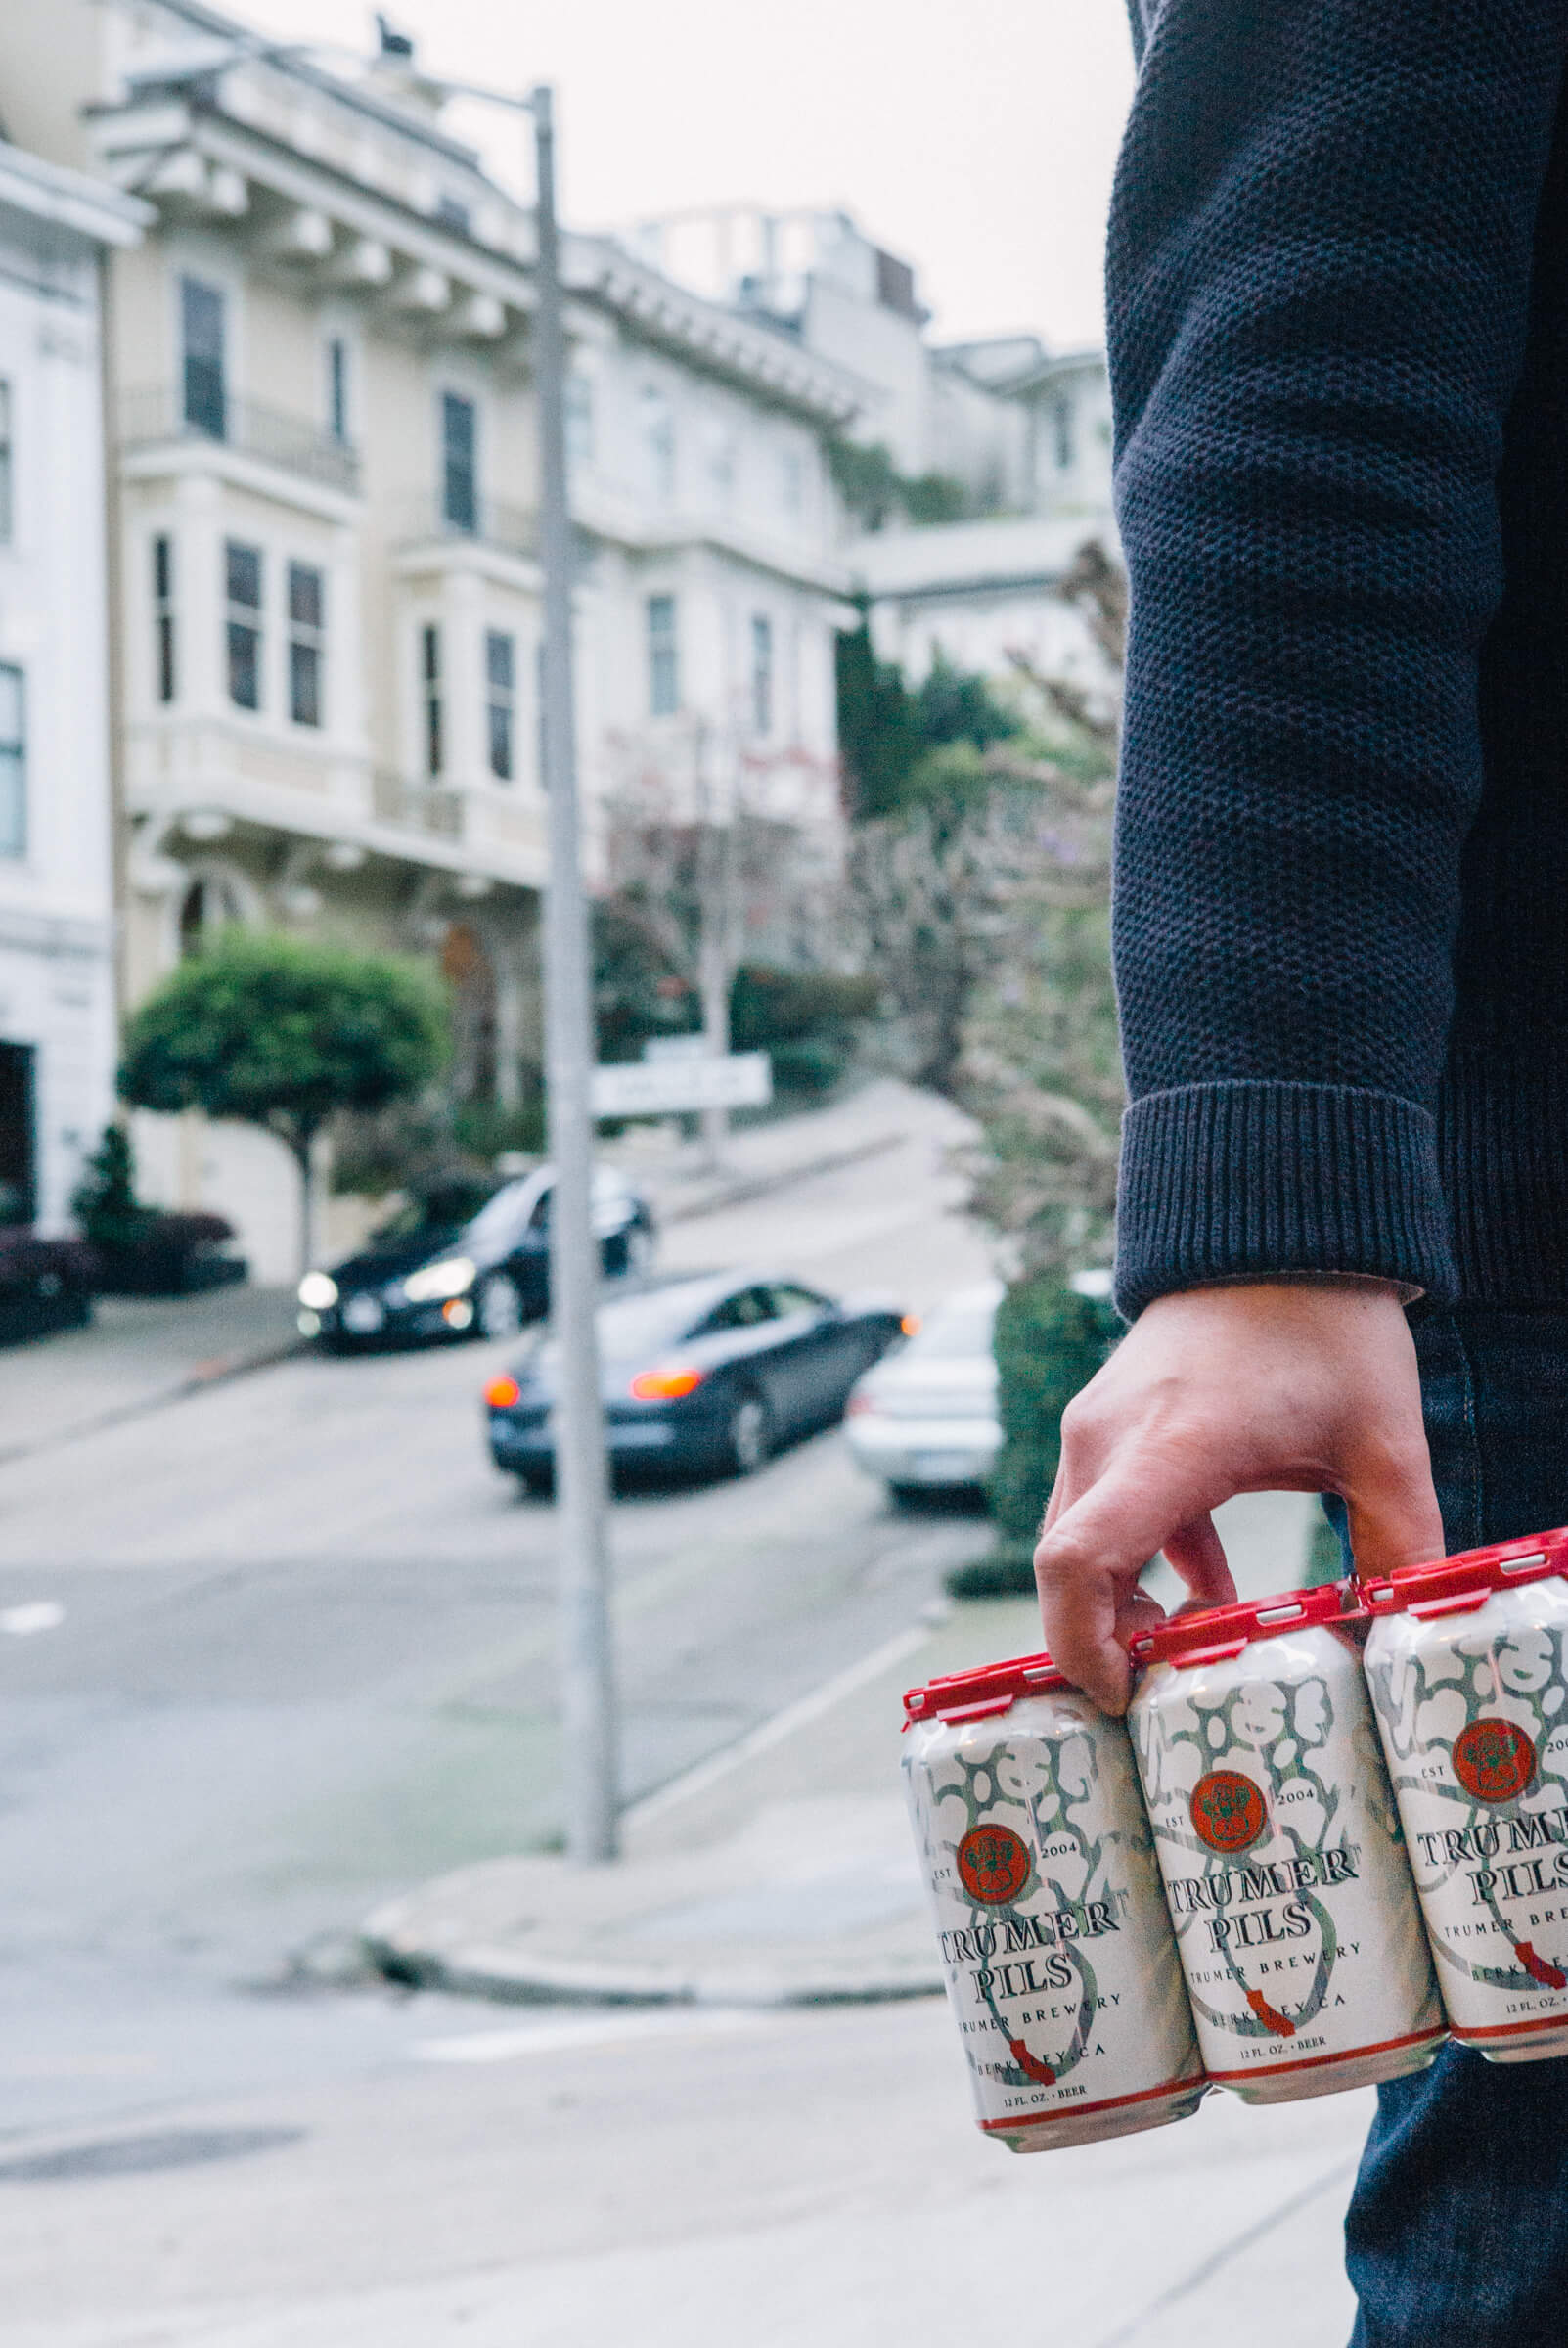 The Taste SF carrying Trumer Pils Cans up the hills of San Francisco